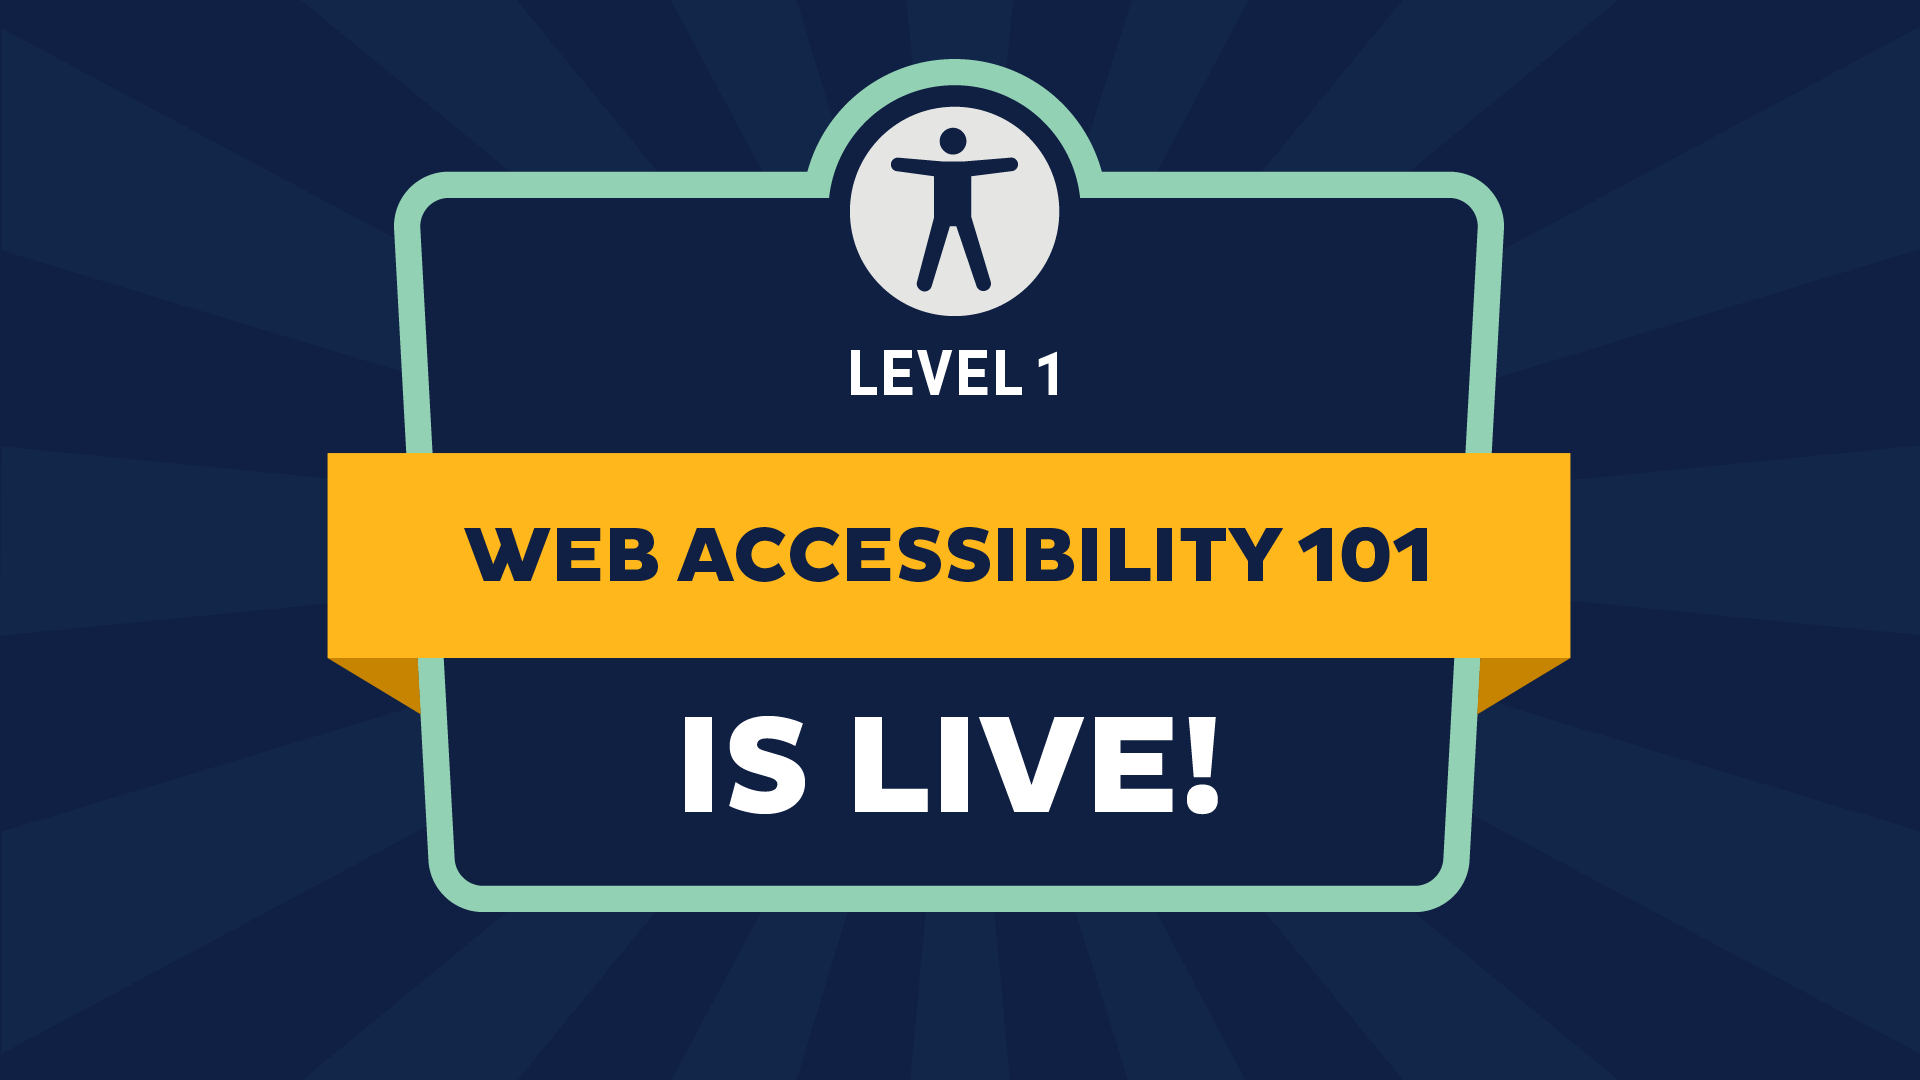 Web Accessibility 101 Level 1 is Live!